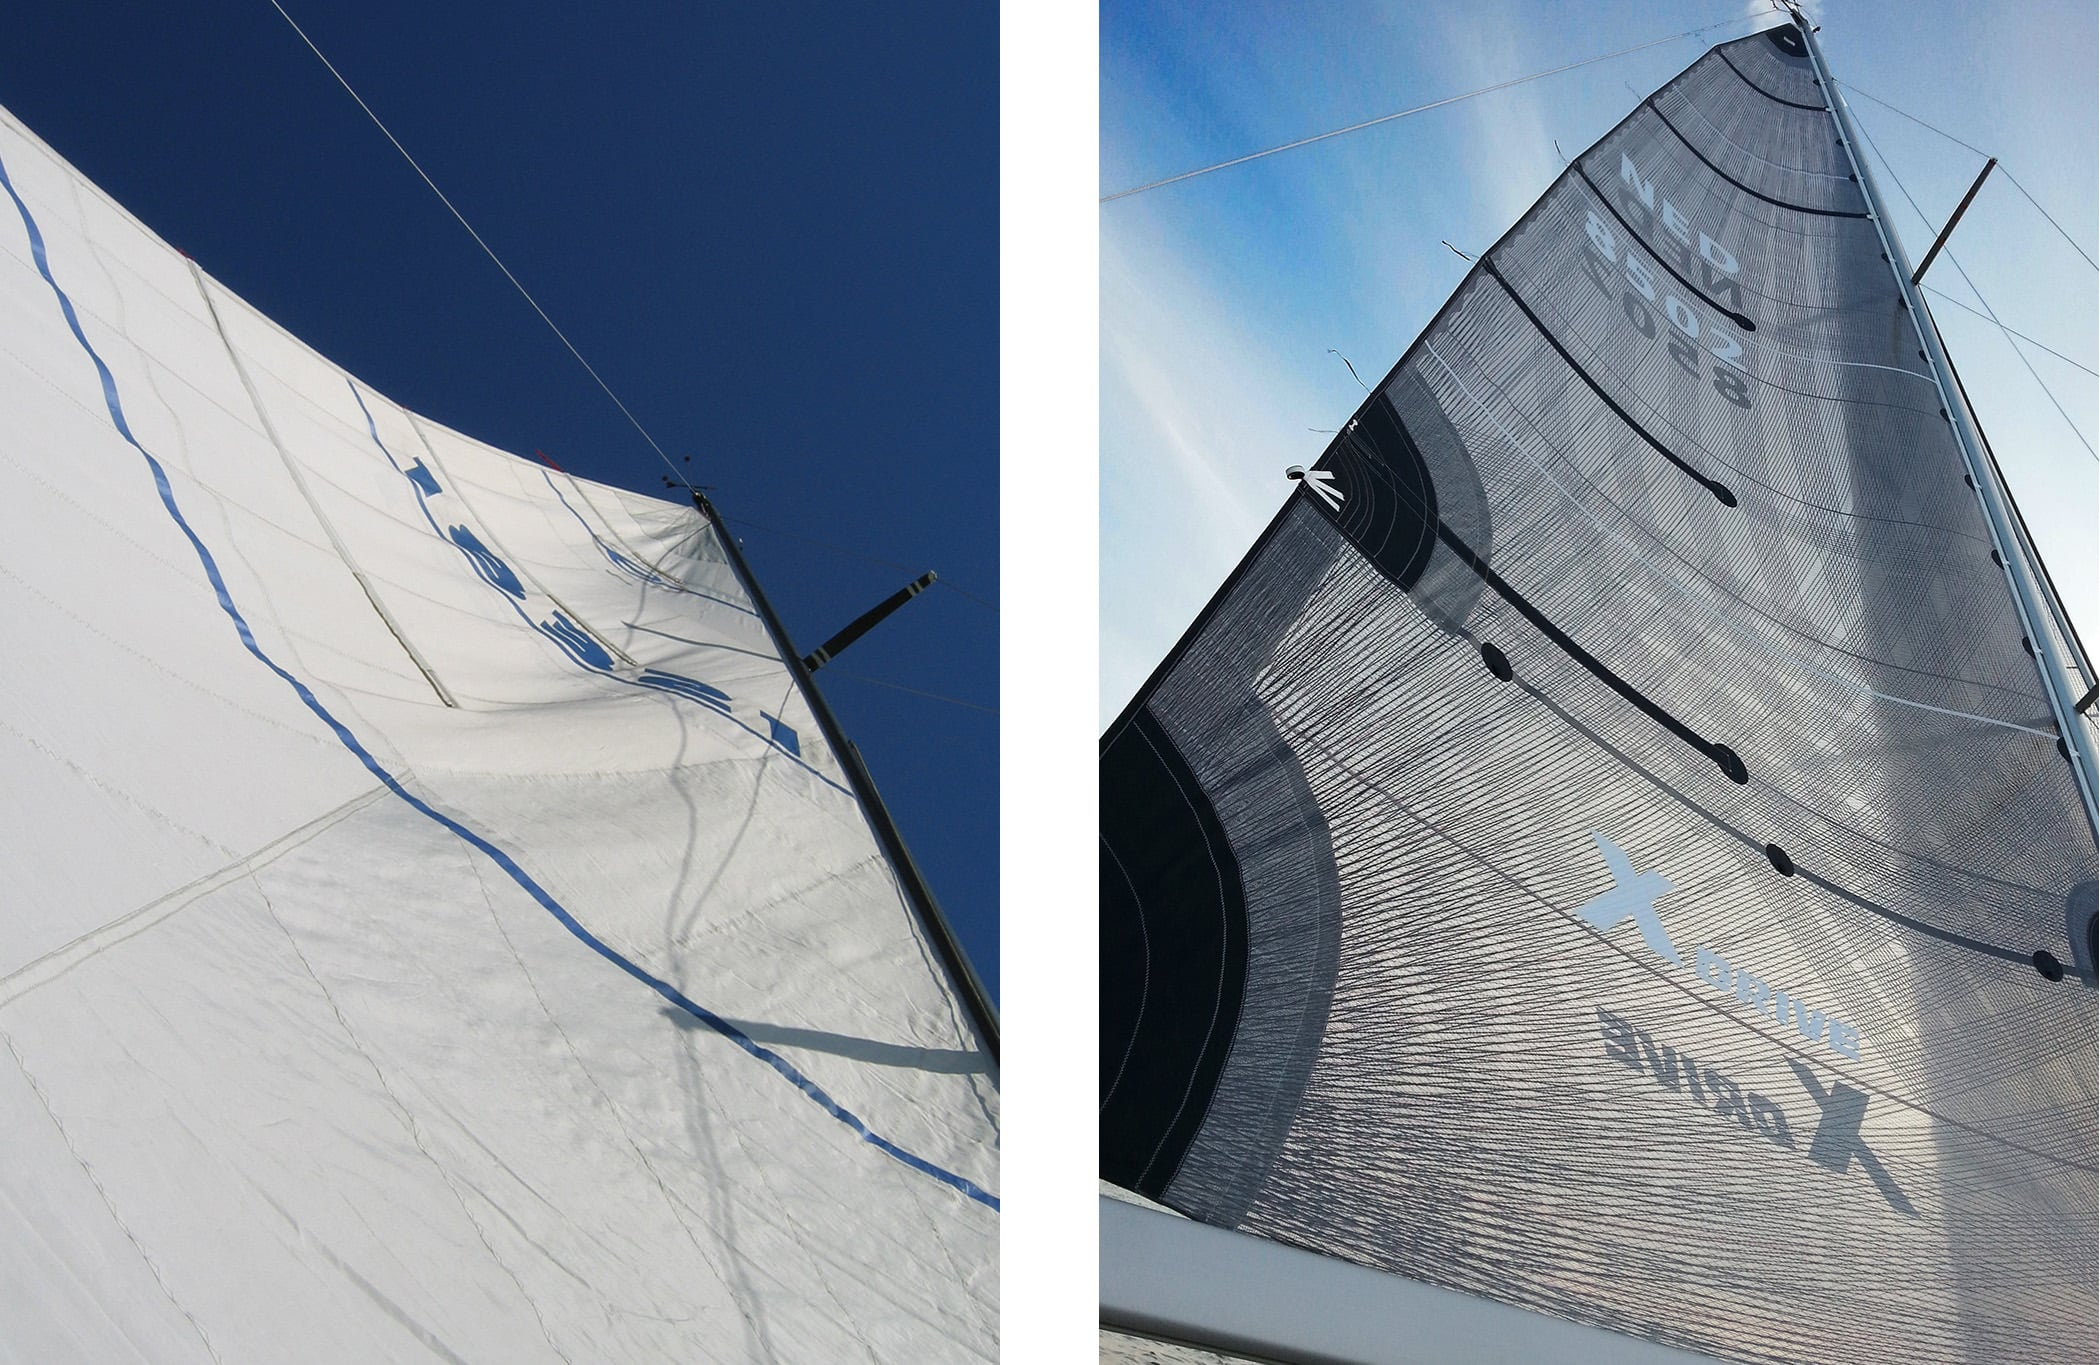 A blown out mainsail on the   left  shows distortion wrinkles and the draft point too far aft, both of which prevent the sail from giving any aerodynamic lift. Compare it to the sail on the   right  , which is a smoother,perfectly shaped X-Drive sail.